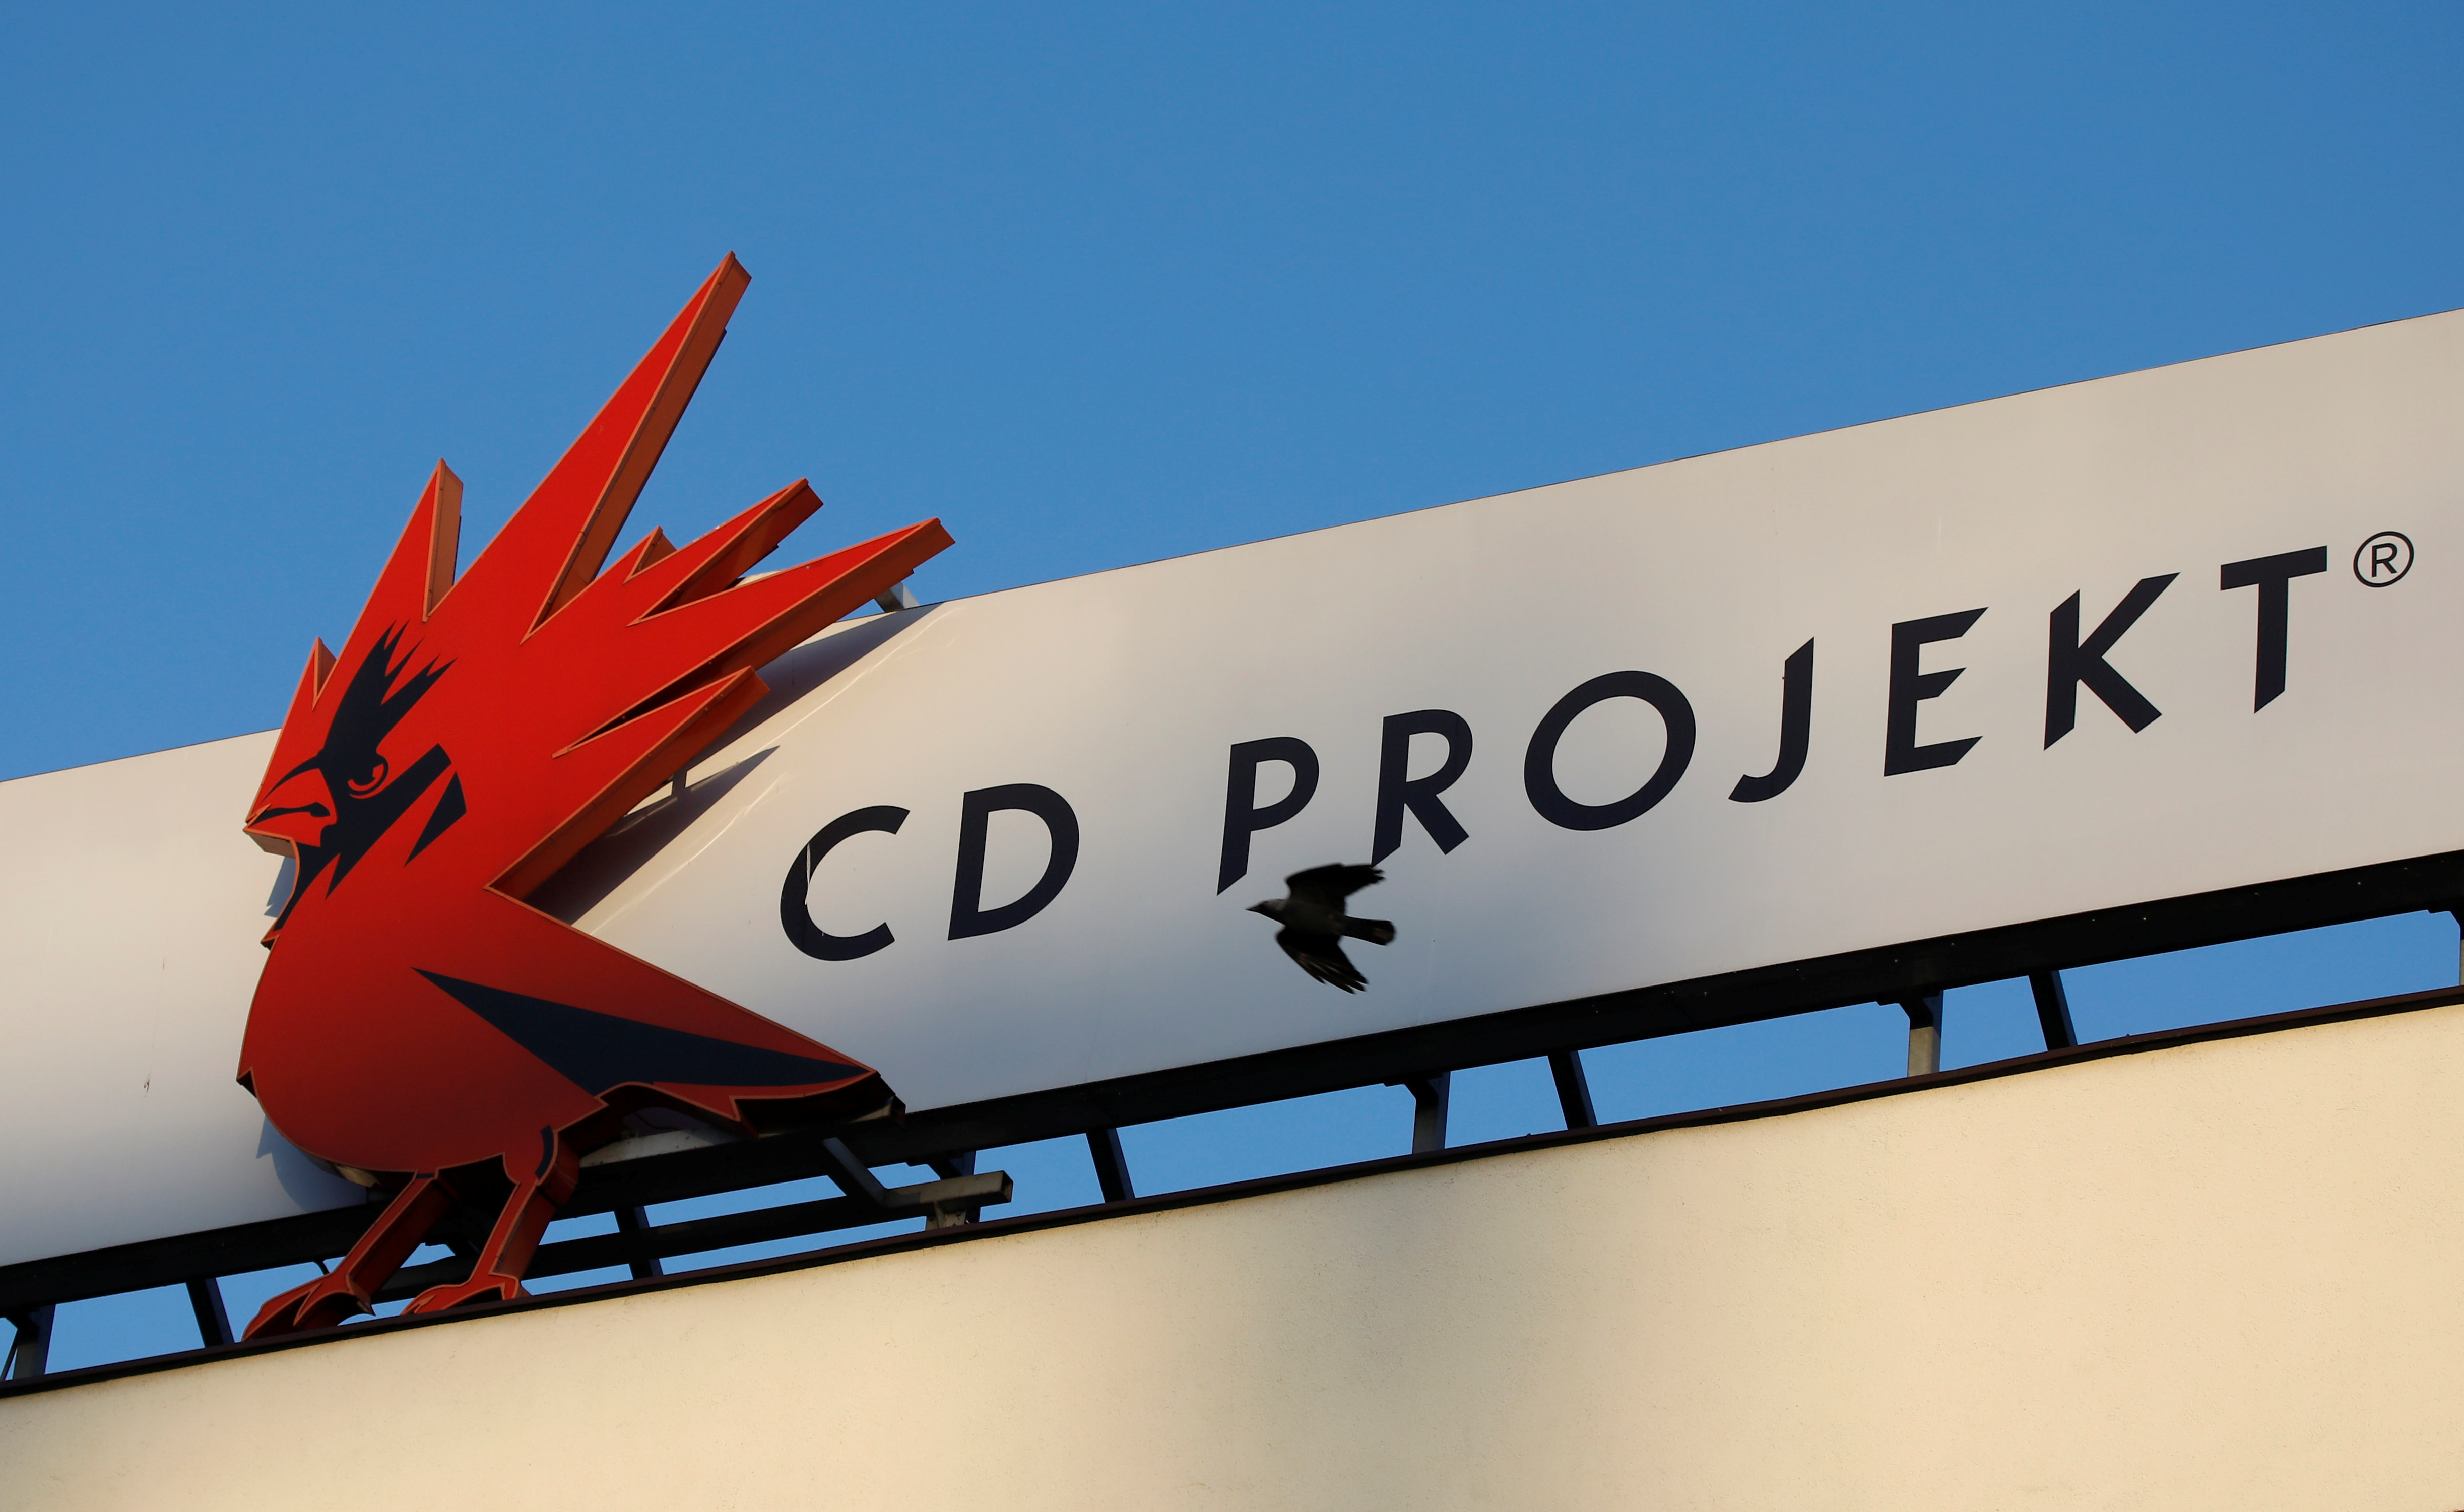 A bird flies in front of the Cd Projekt logo at its headquarters in Warsaw, Poland January 21, 2020. REUTERS/Kacper Pempel